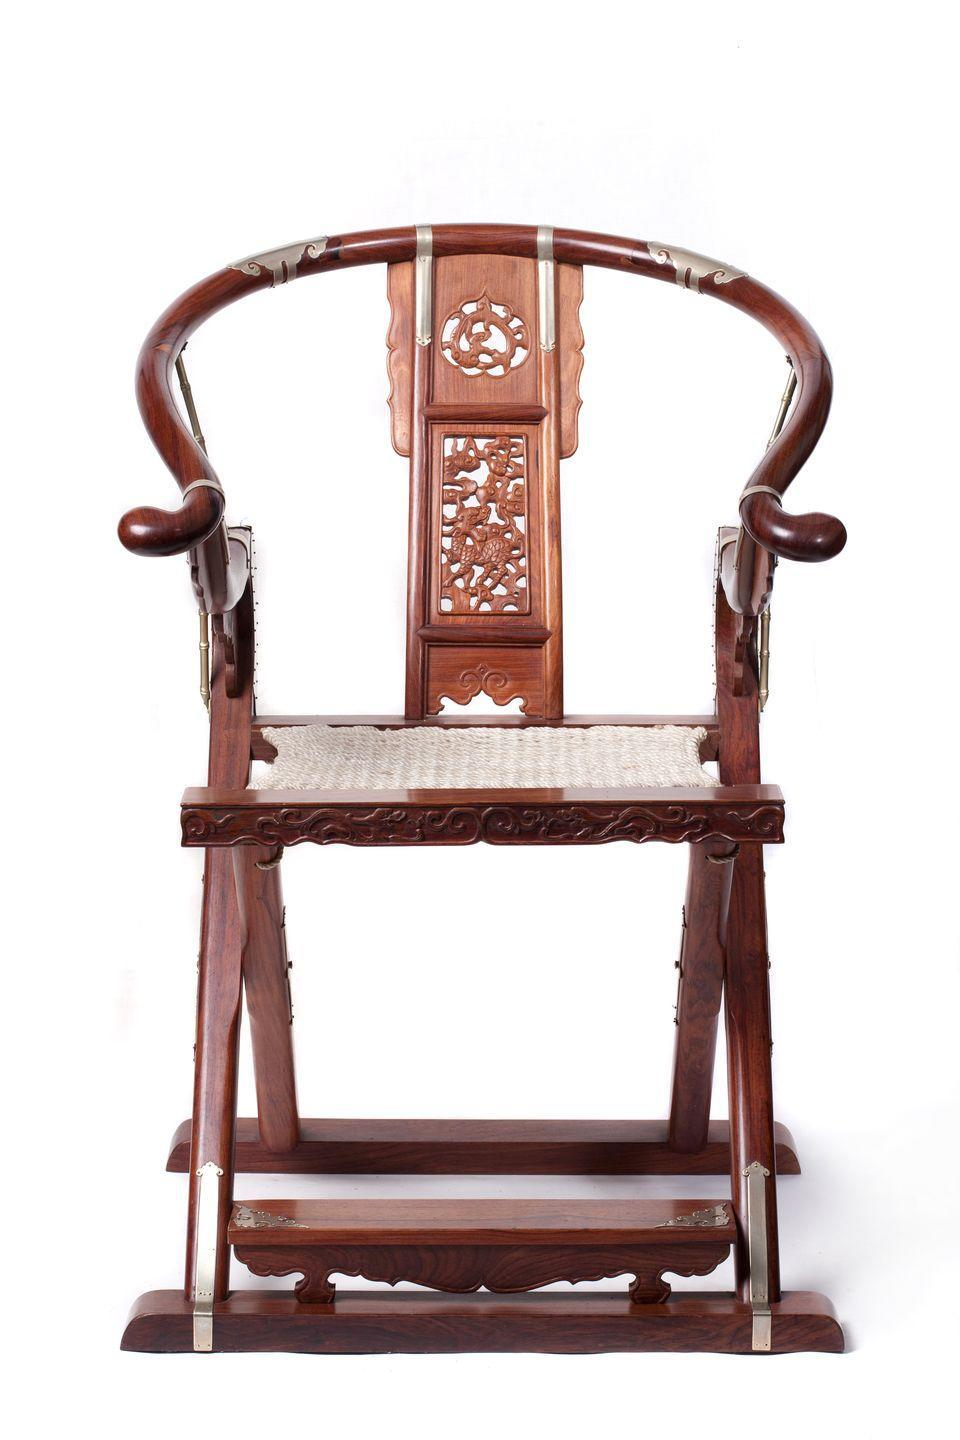 <p>Given that the Ming dynasty ruled China from 1368 to 1644, there's a wide range of furniture styles from the period. Towards the later years, though, the nation saw the production of intricate, carved wood furniture, much of it produced—thanks to discoveries in joinery—without the use of nails. The curved backs and folding seats of the Ming era would become especially influential on later furniture designs. </p>